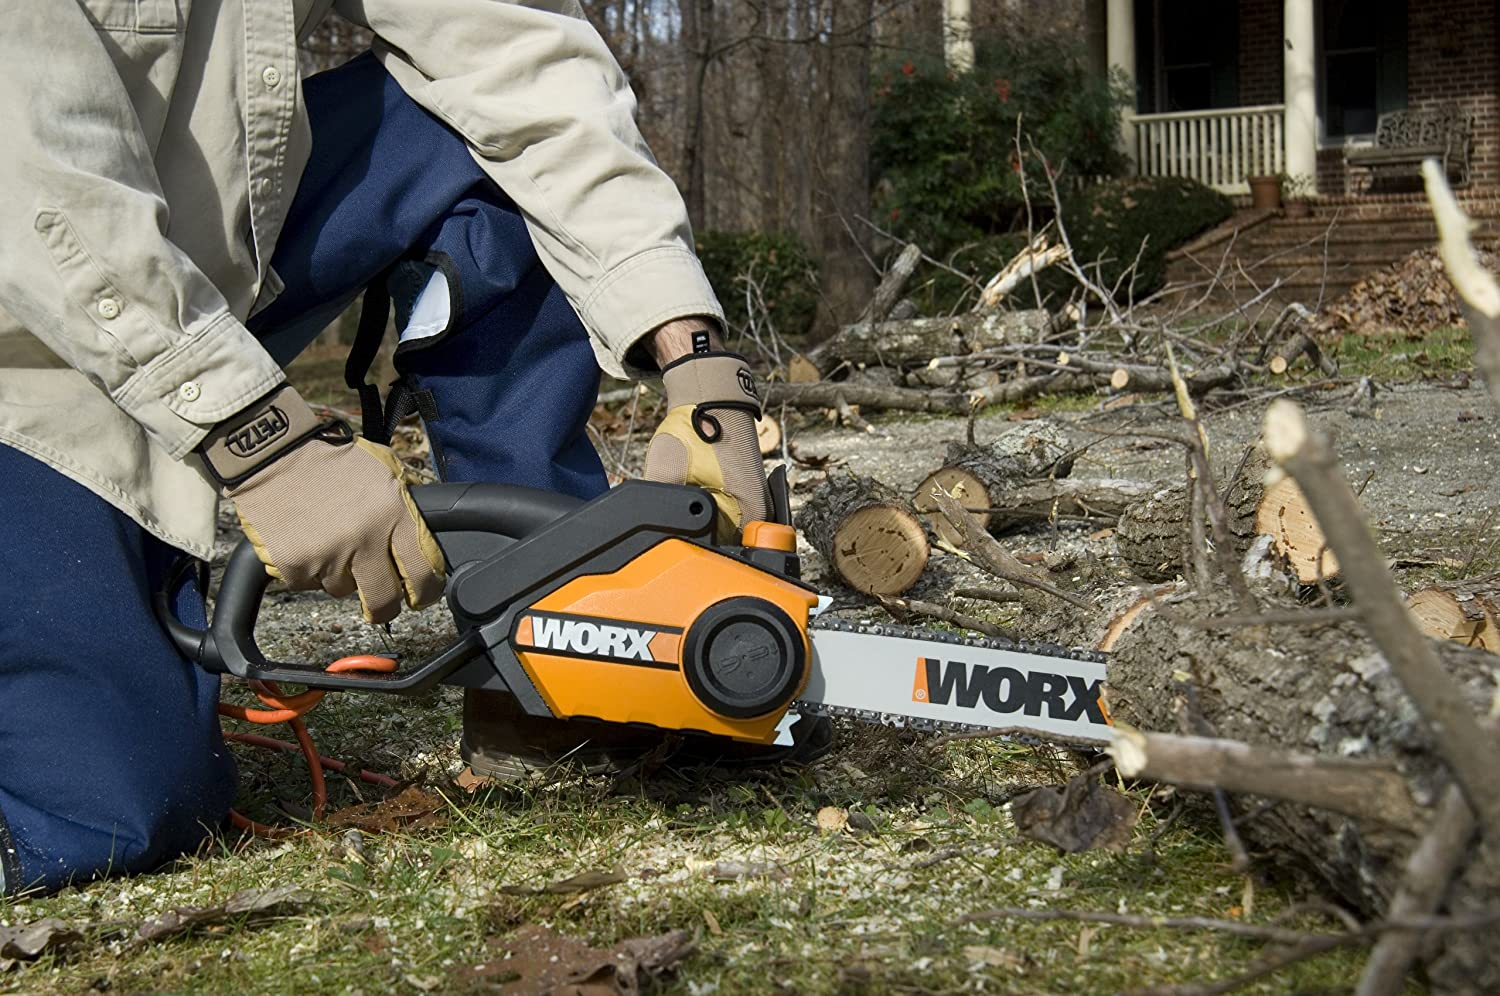 WORX WG303.1 Electric Chainsaw Review